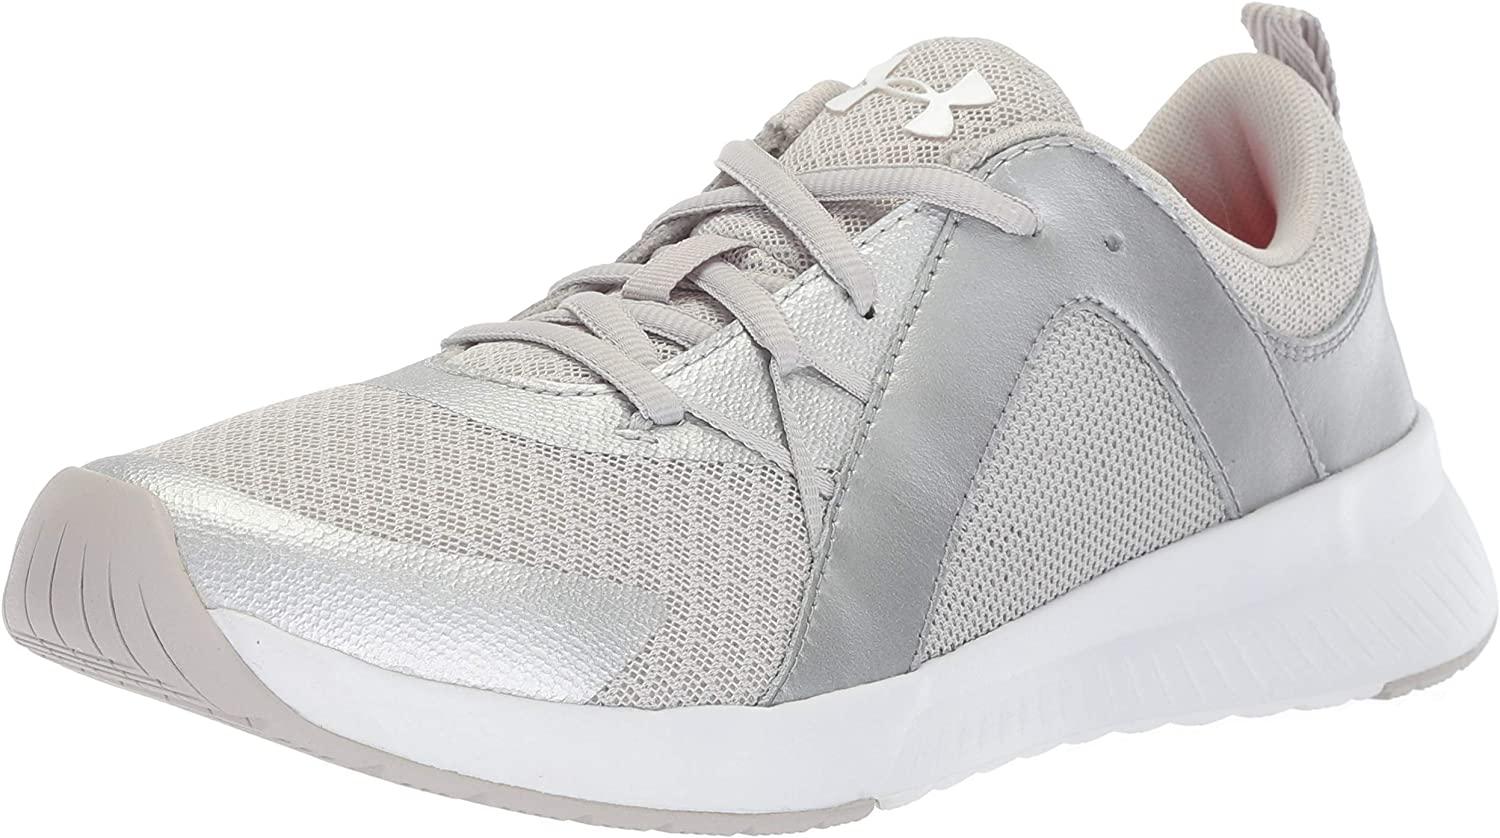 Under Armour Women's Intent Trainergen Sneaker